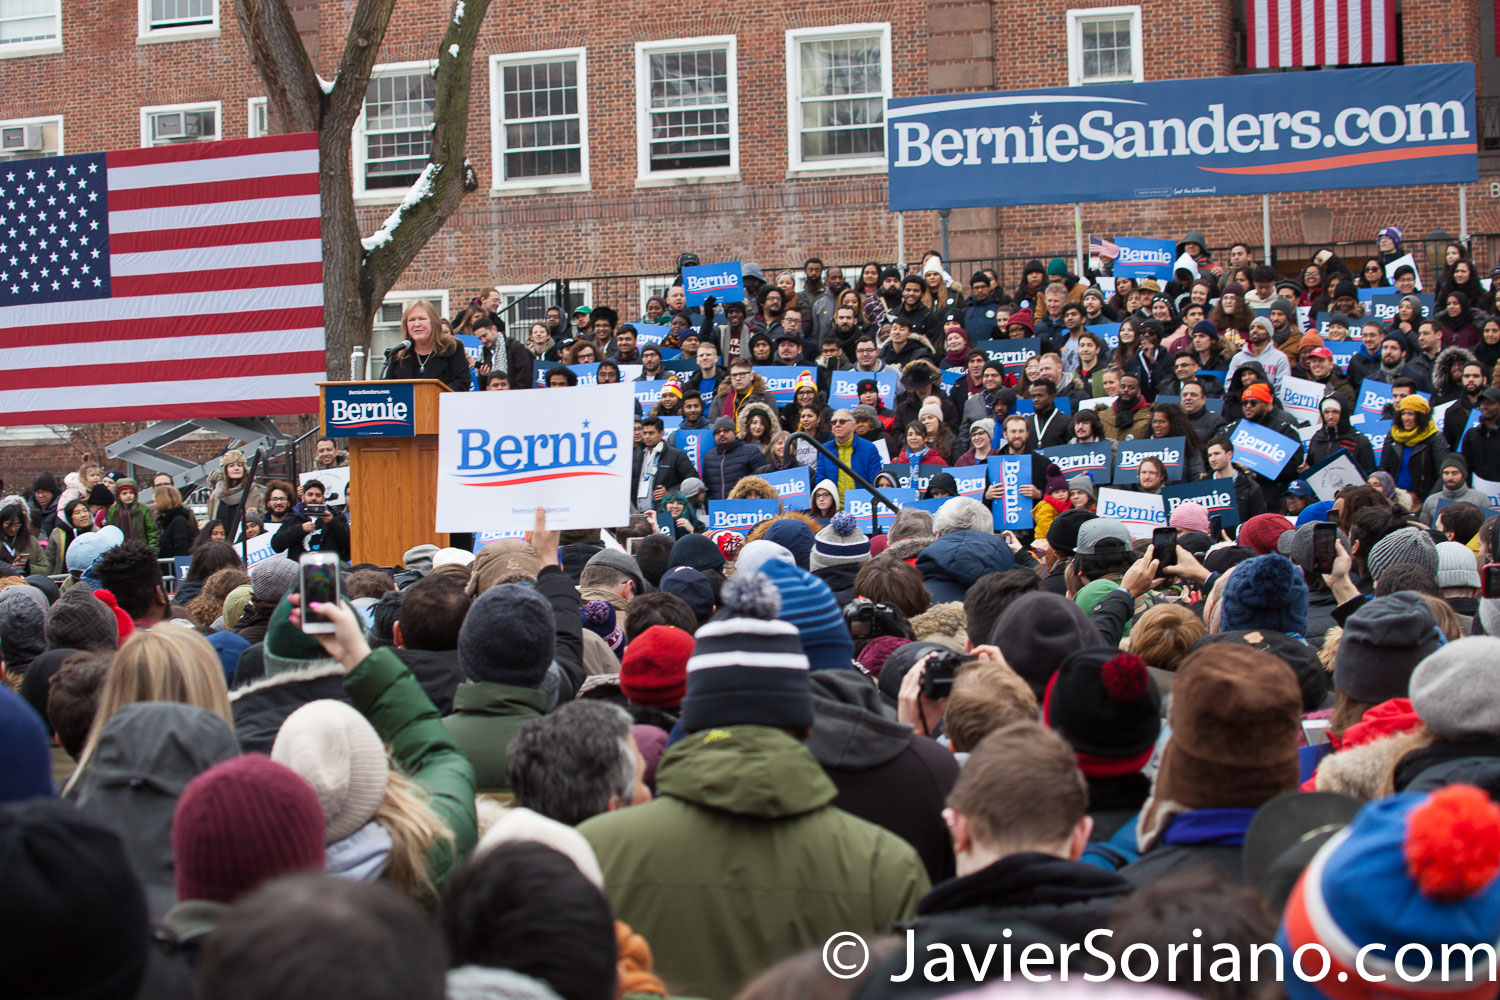 Saturday, March 2, 2019. Brooklyn College. Brooklyn, New York City. Jane O'Meara Sanders, wife of Bernie Sanders and more than 10 thousand supporters of U.S. Senator and presidential candidate Bernie Sanders. This was the first event of his 2020 presidential campaign. Photo by Javier Soriano/www.JavierSoriano.com